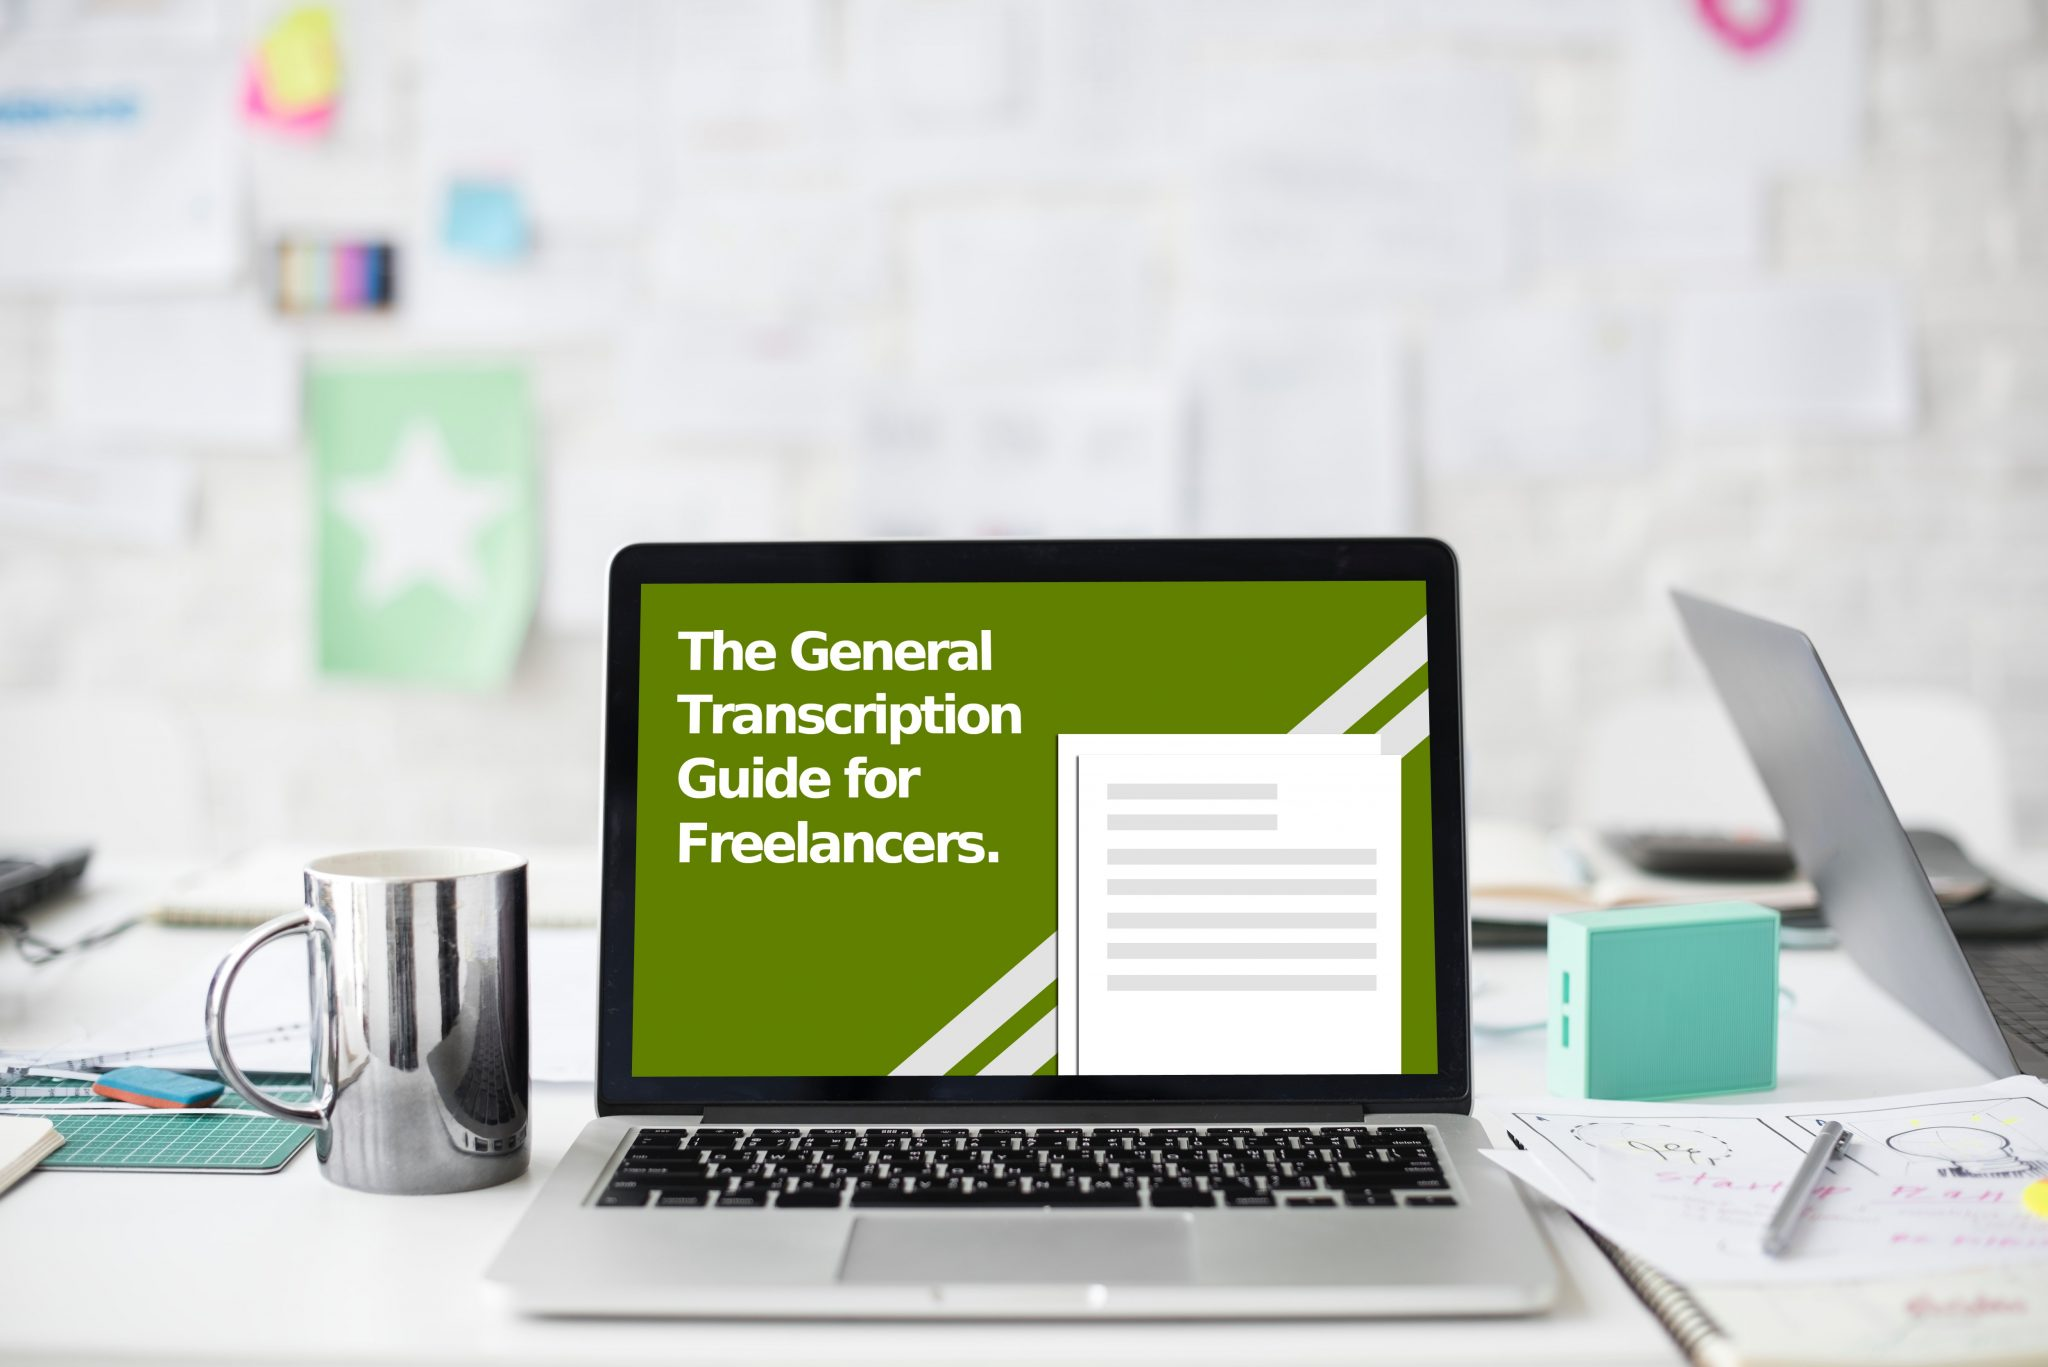 The General Transcription Guide for Freelancers